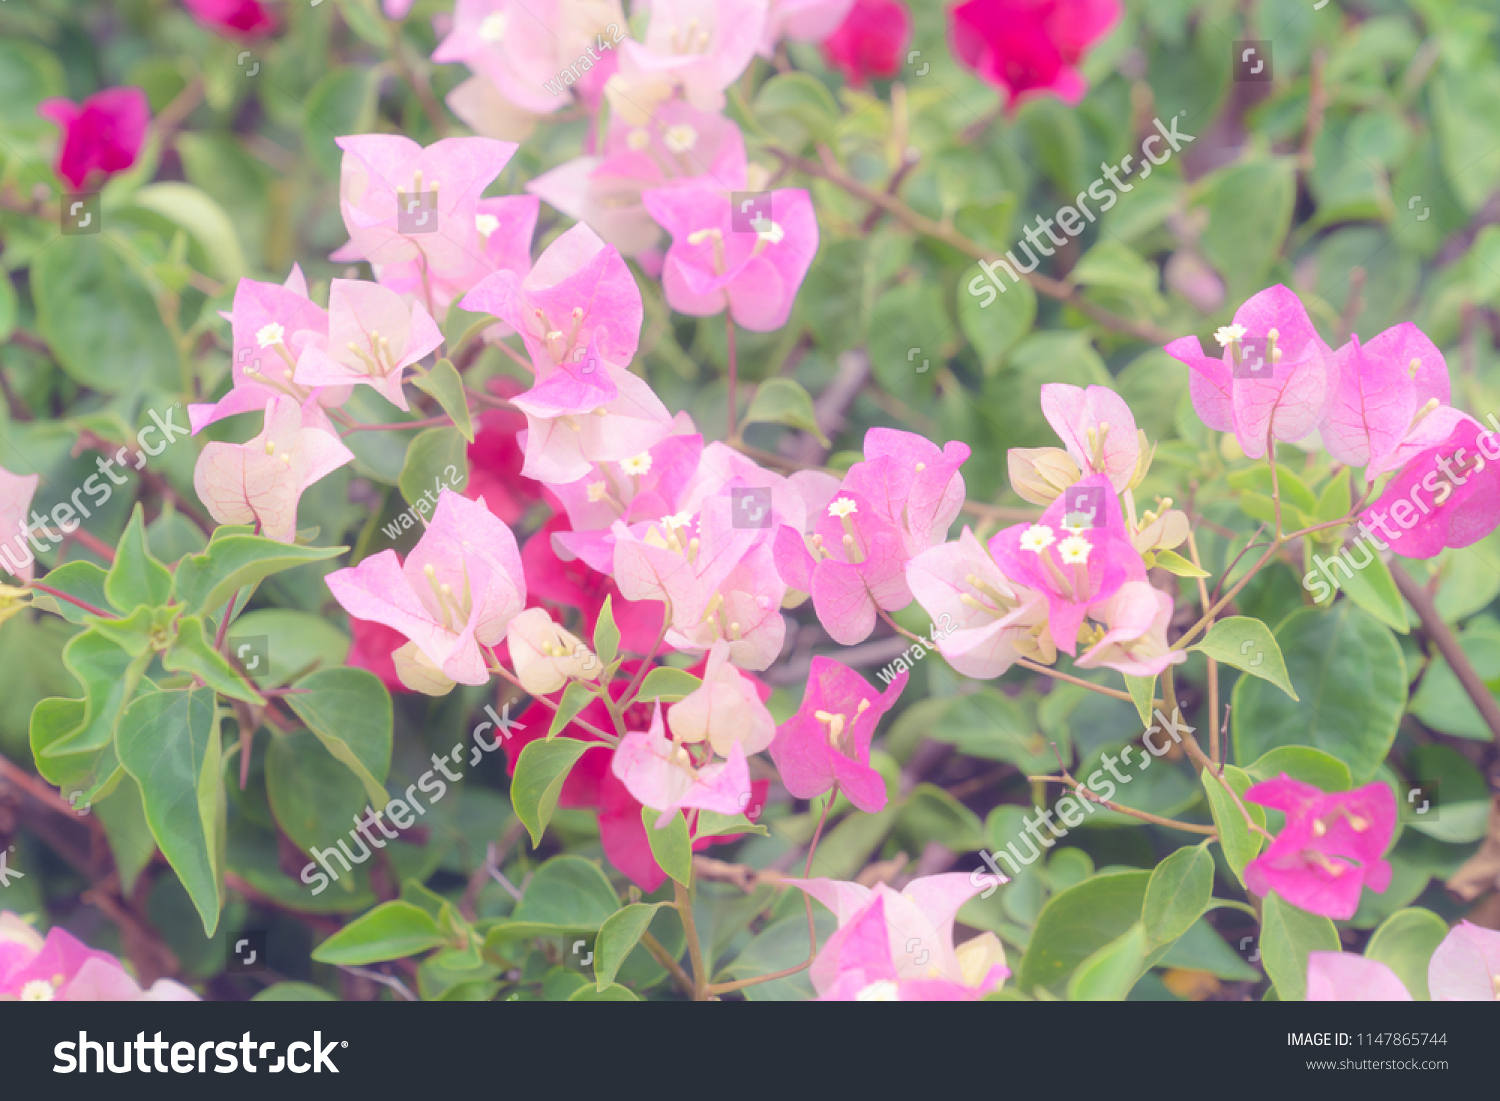 Bougainvillea Wallpaper Beautiful Bougainvillea Flower Wallpaper Texture Backgroundsoft